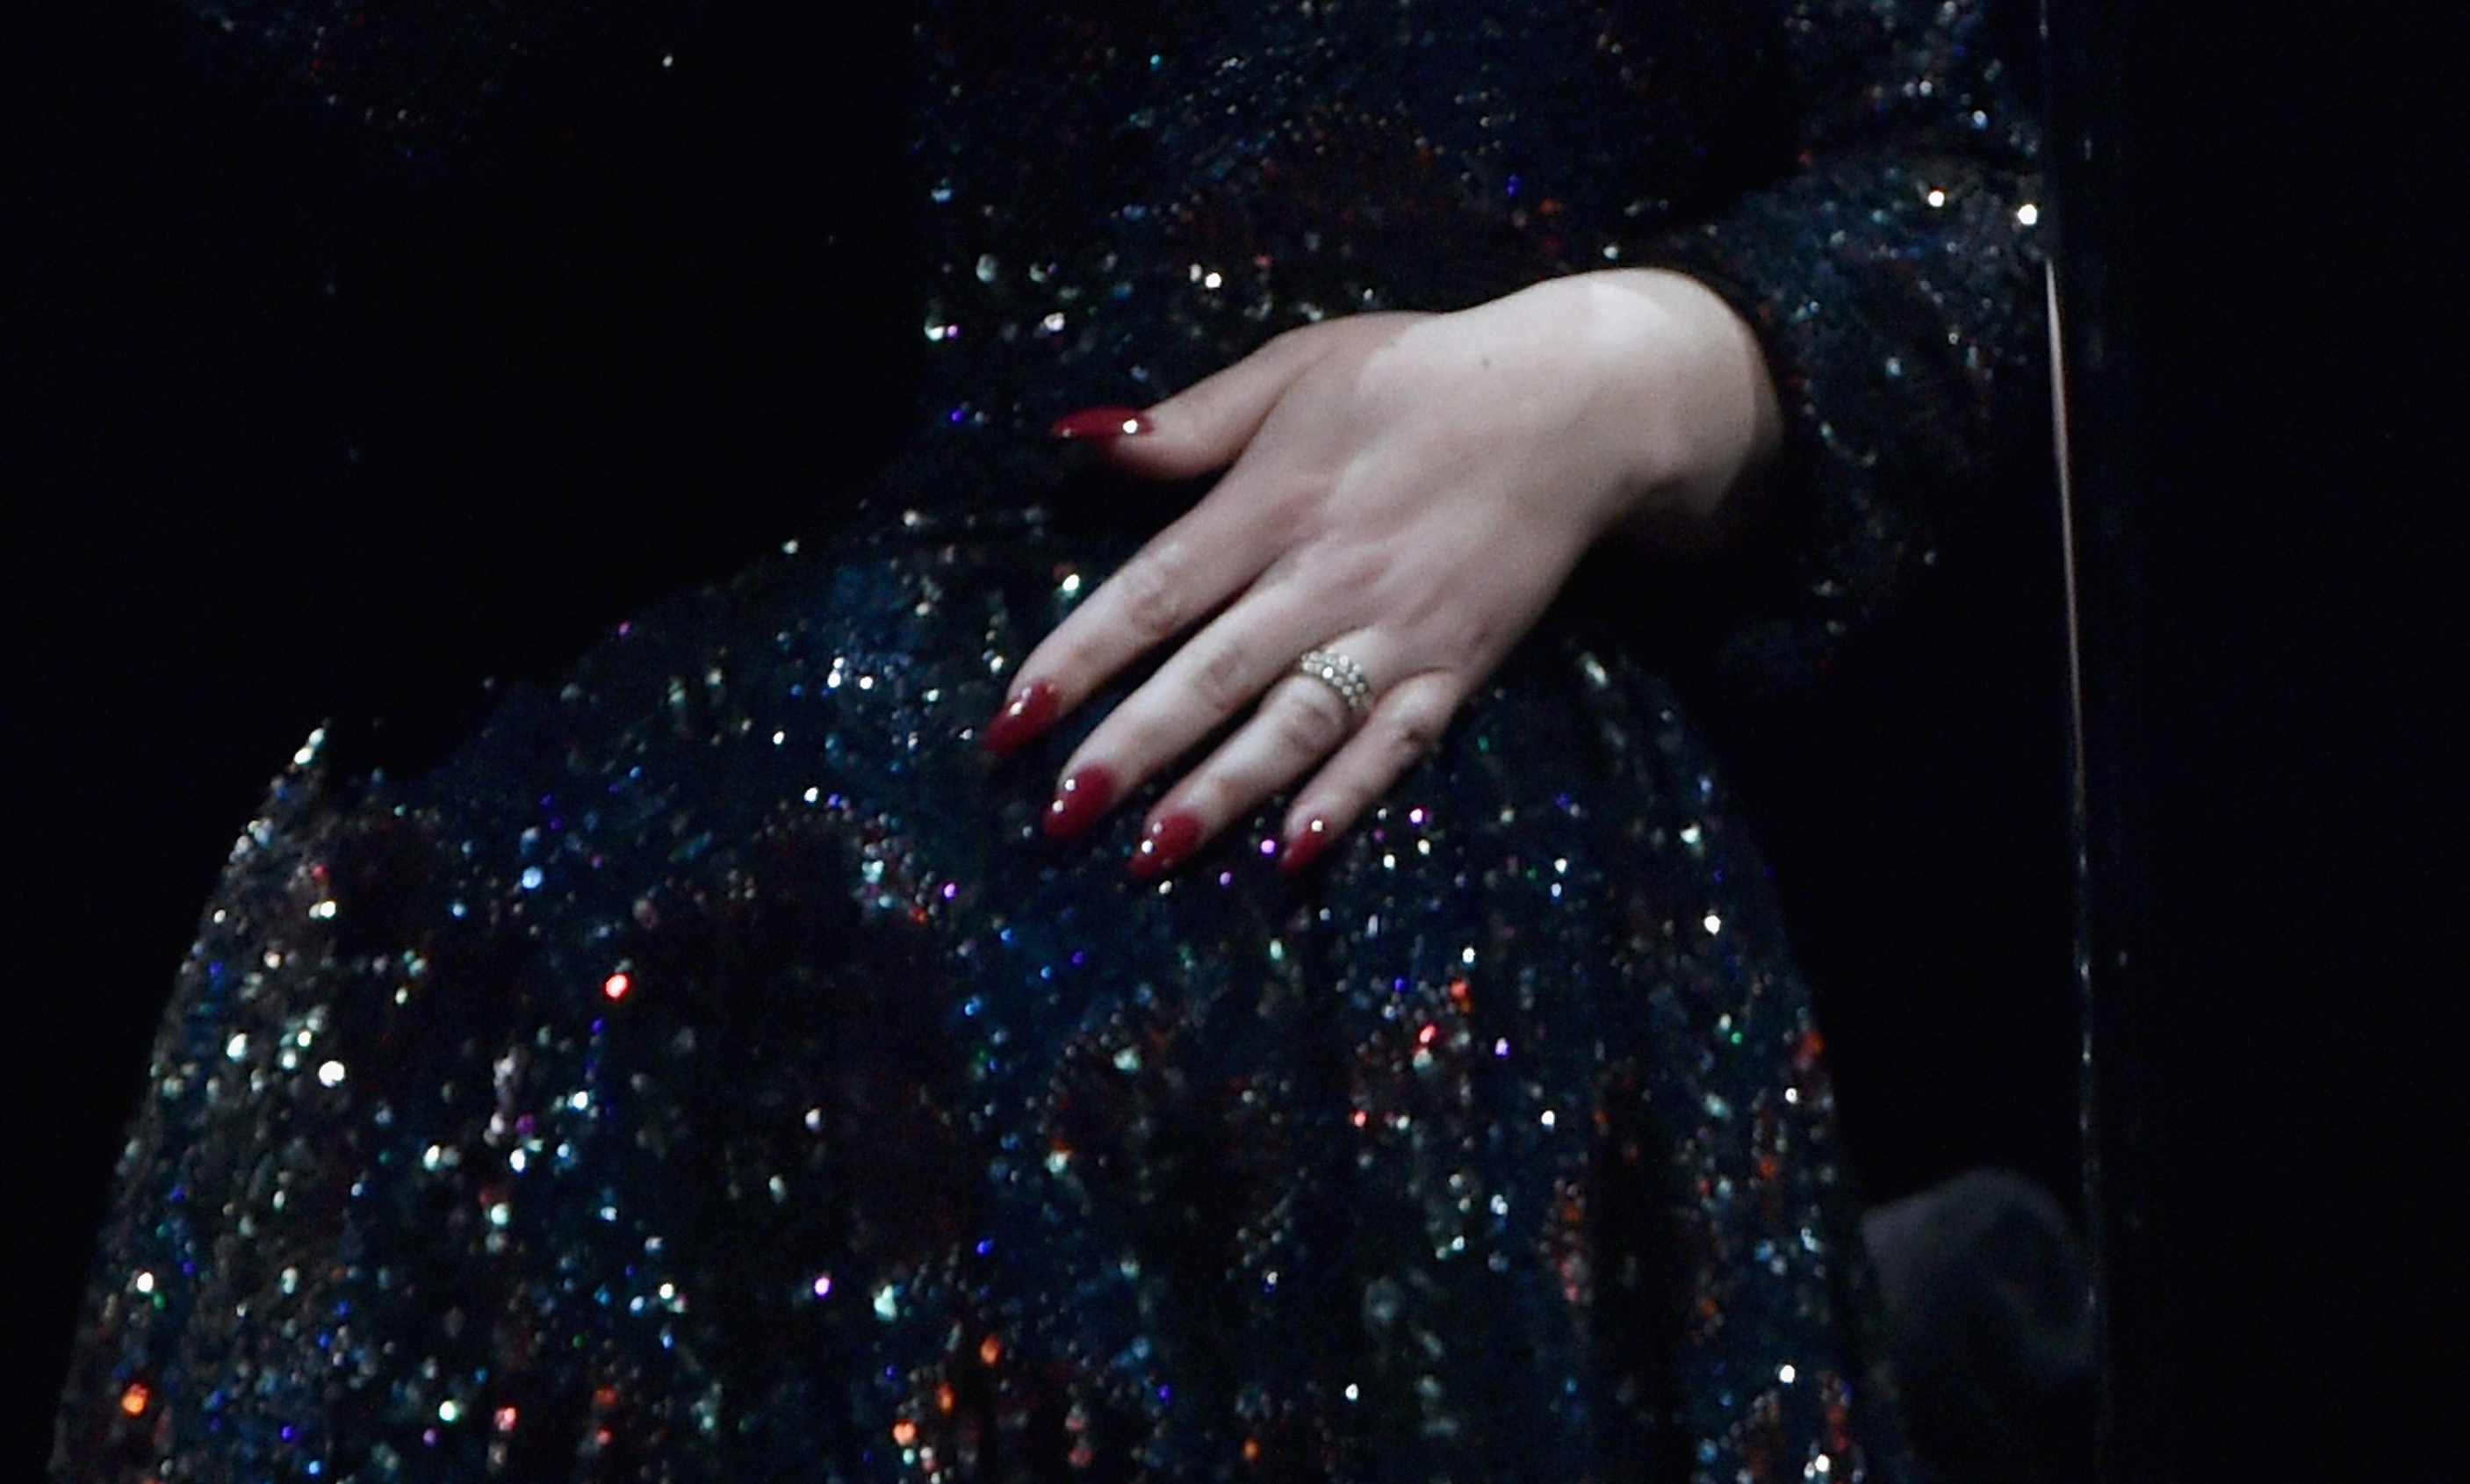 Ring suggests Adele might be engaged